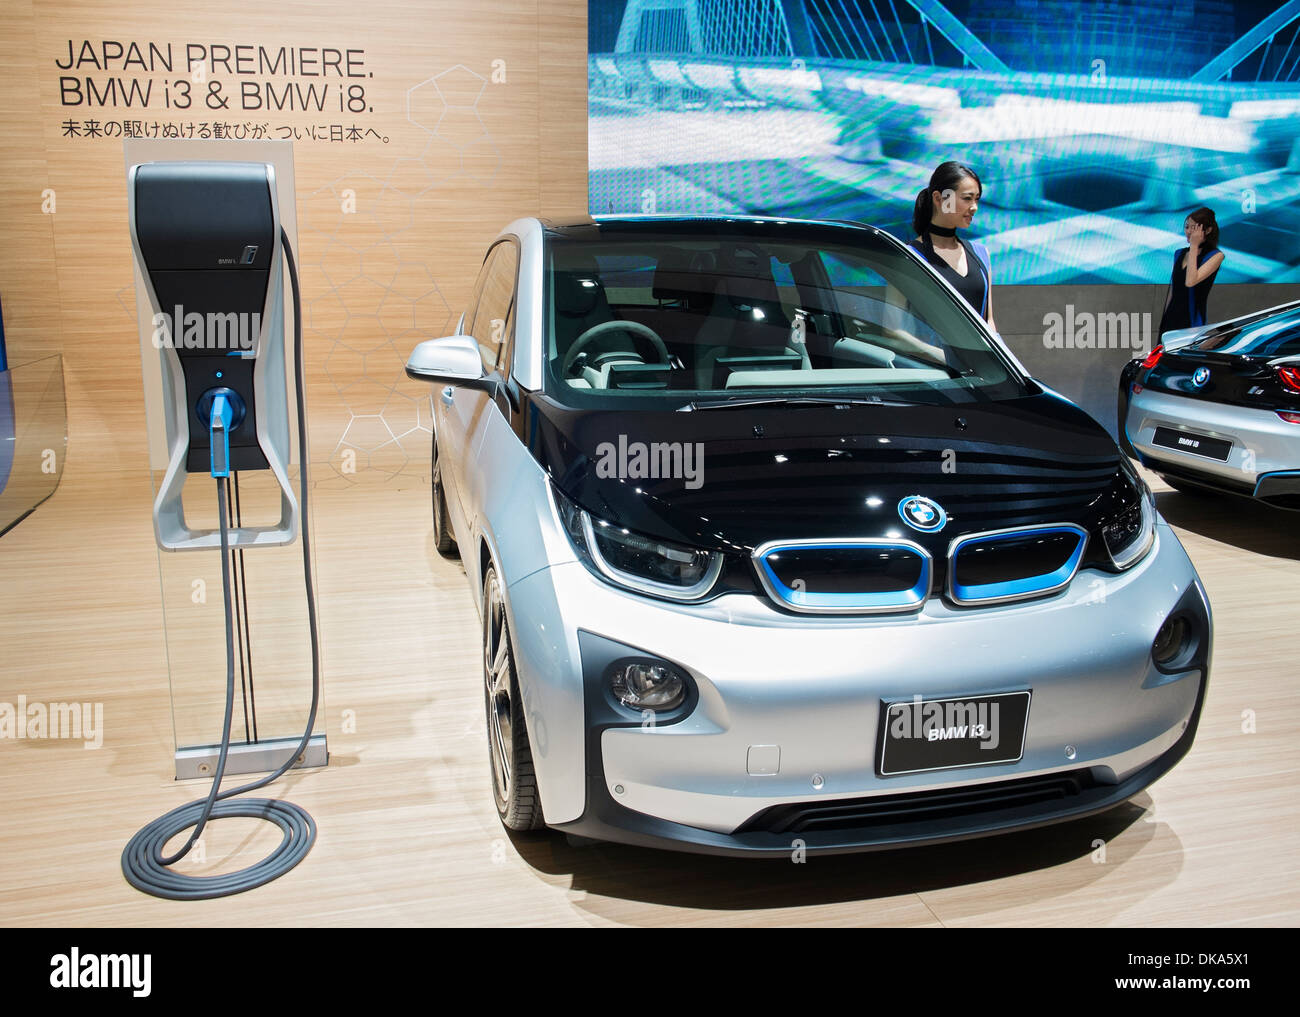 Bmw I3 Electric Plug In Car At Tokyo Motor Show 2013 In Japan Stock